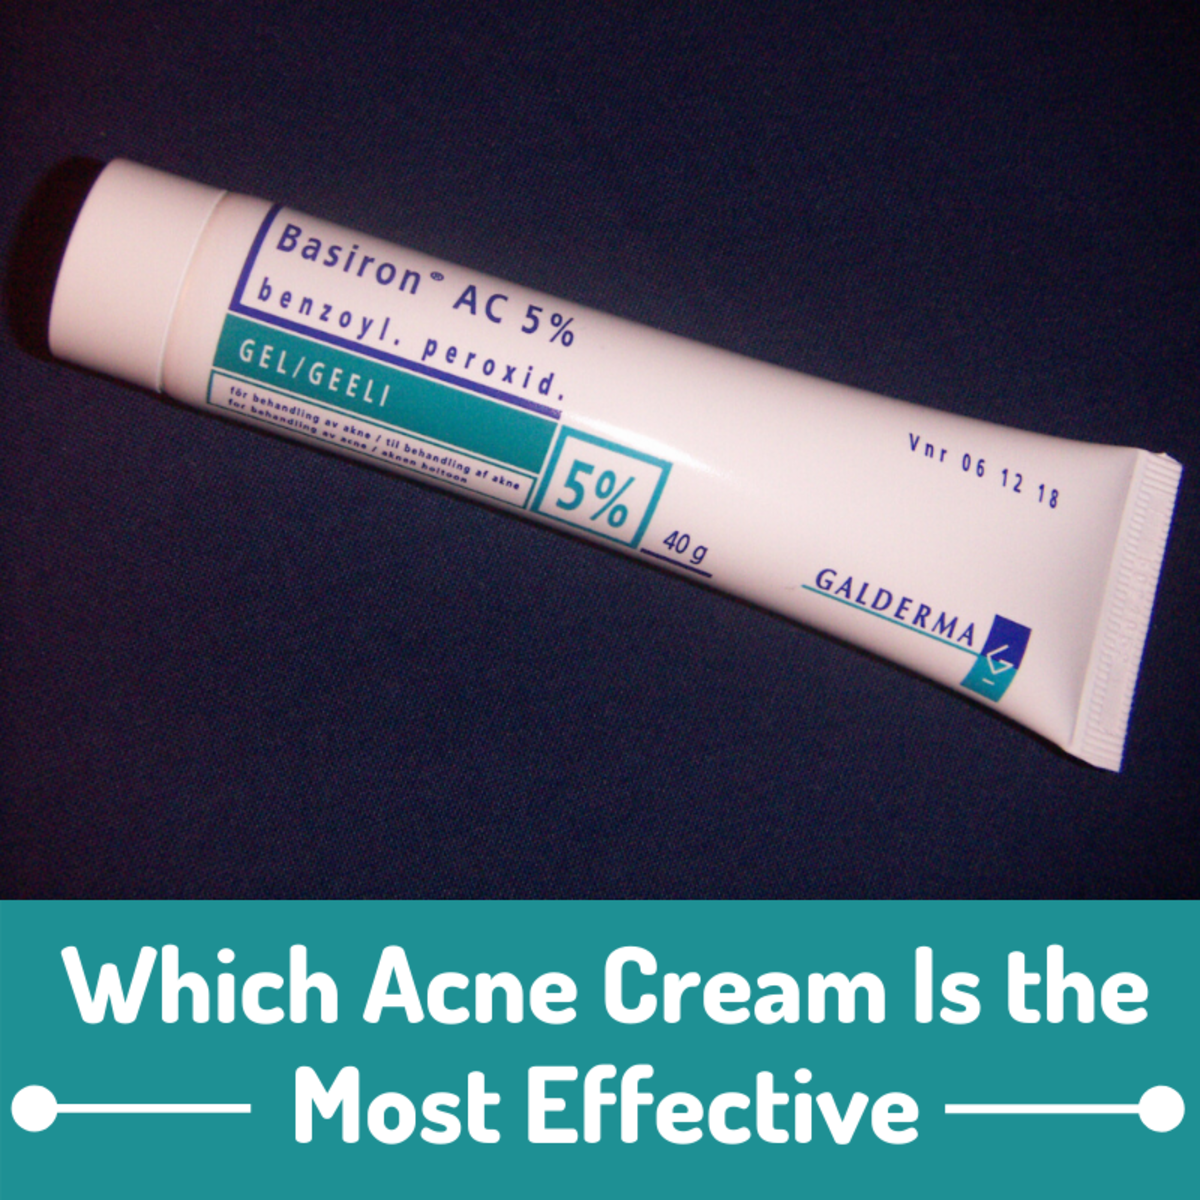 There are so many brands of acne products on the market that it can be difficult to know where to start.